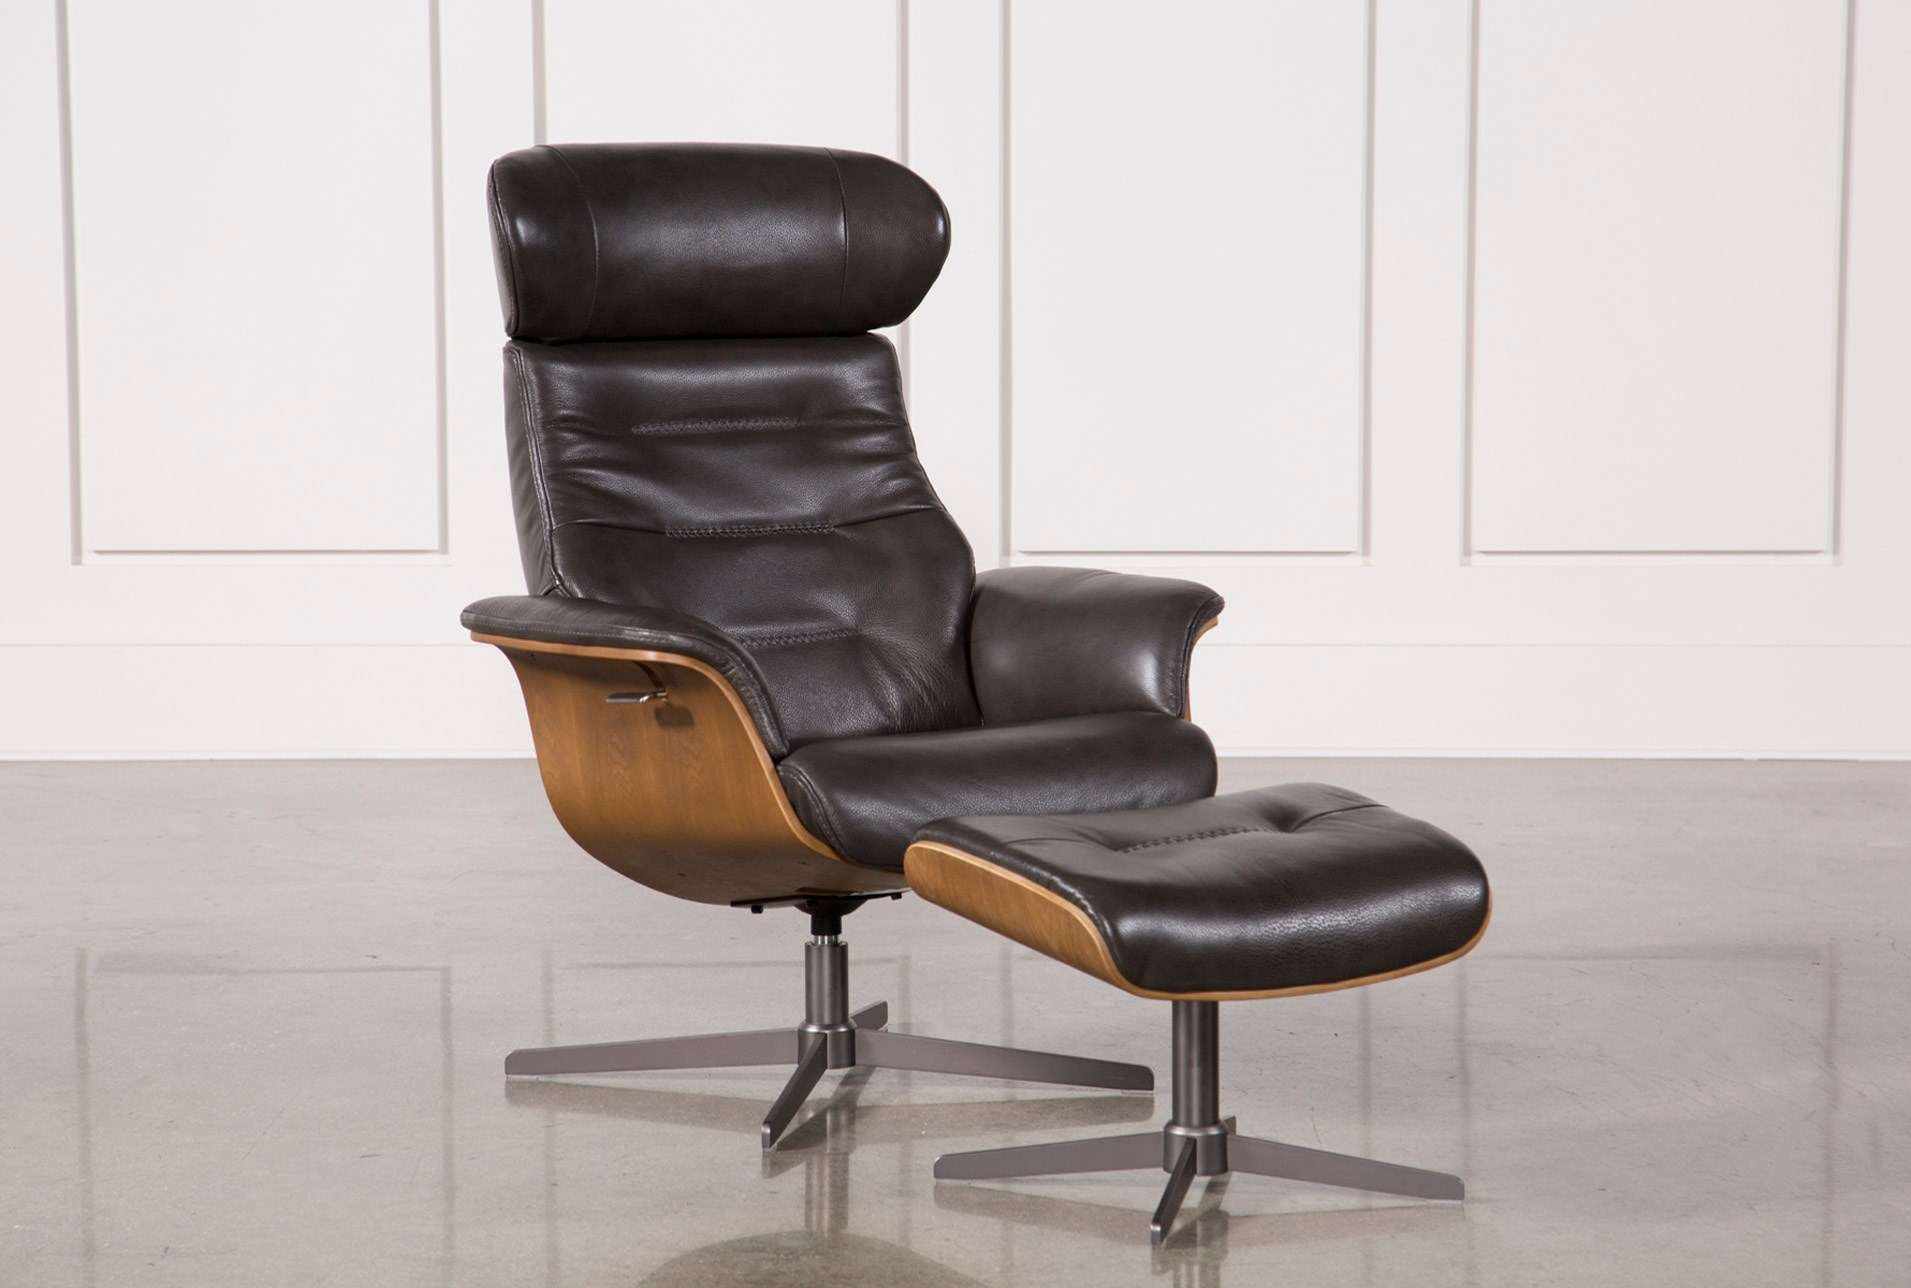 Amala Dark Grey Leather Reclining Swivel Chair Ottoman Qty 1 Has Been Successfully Added To Your Cart